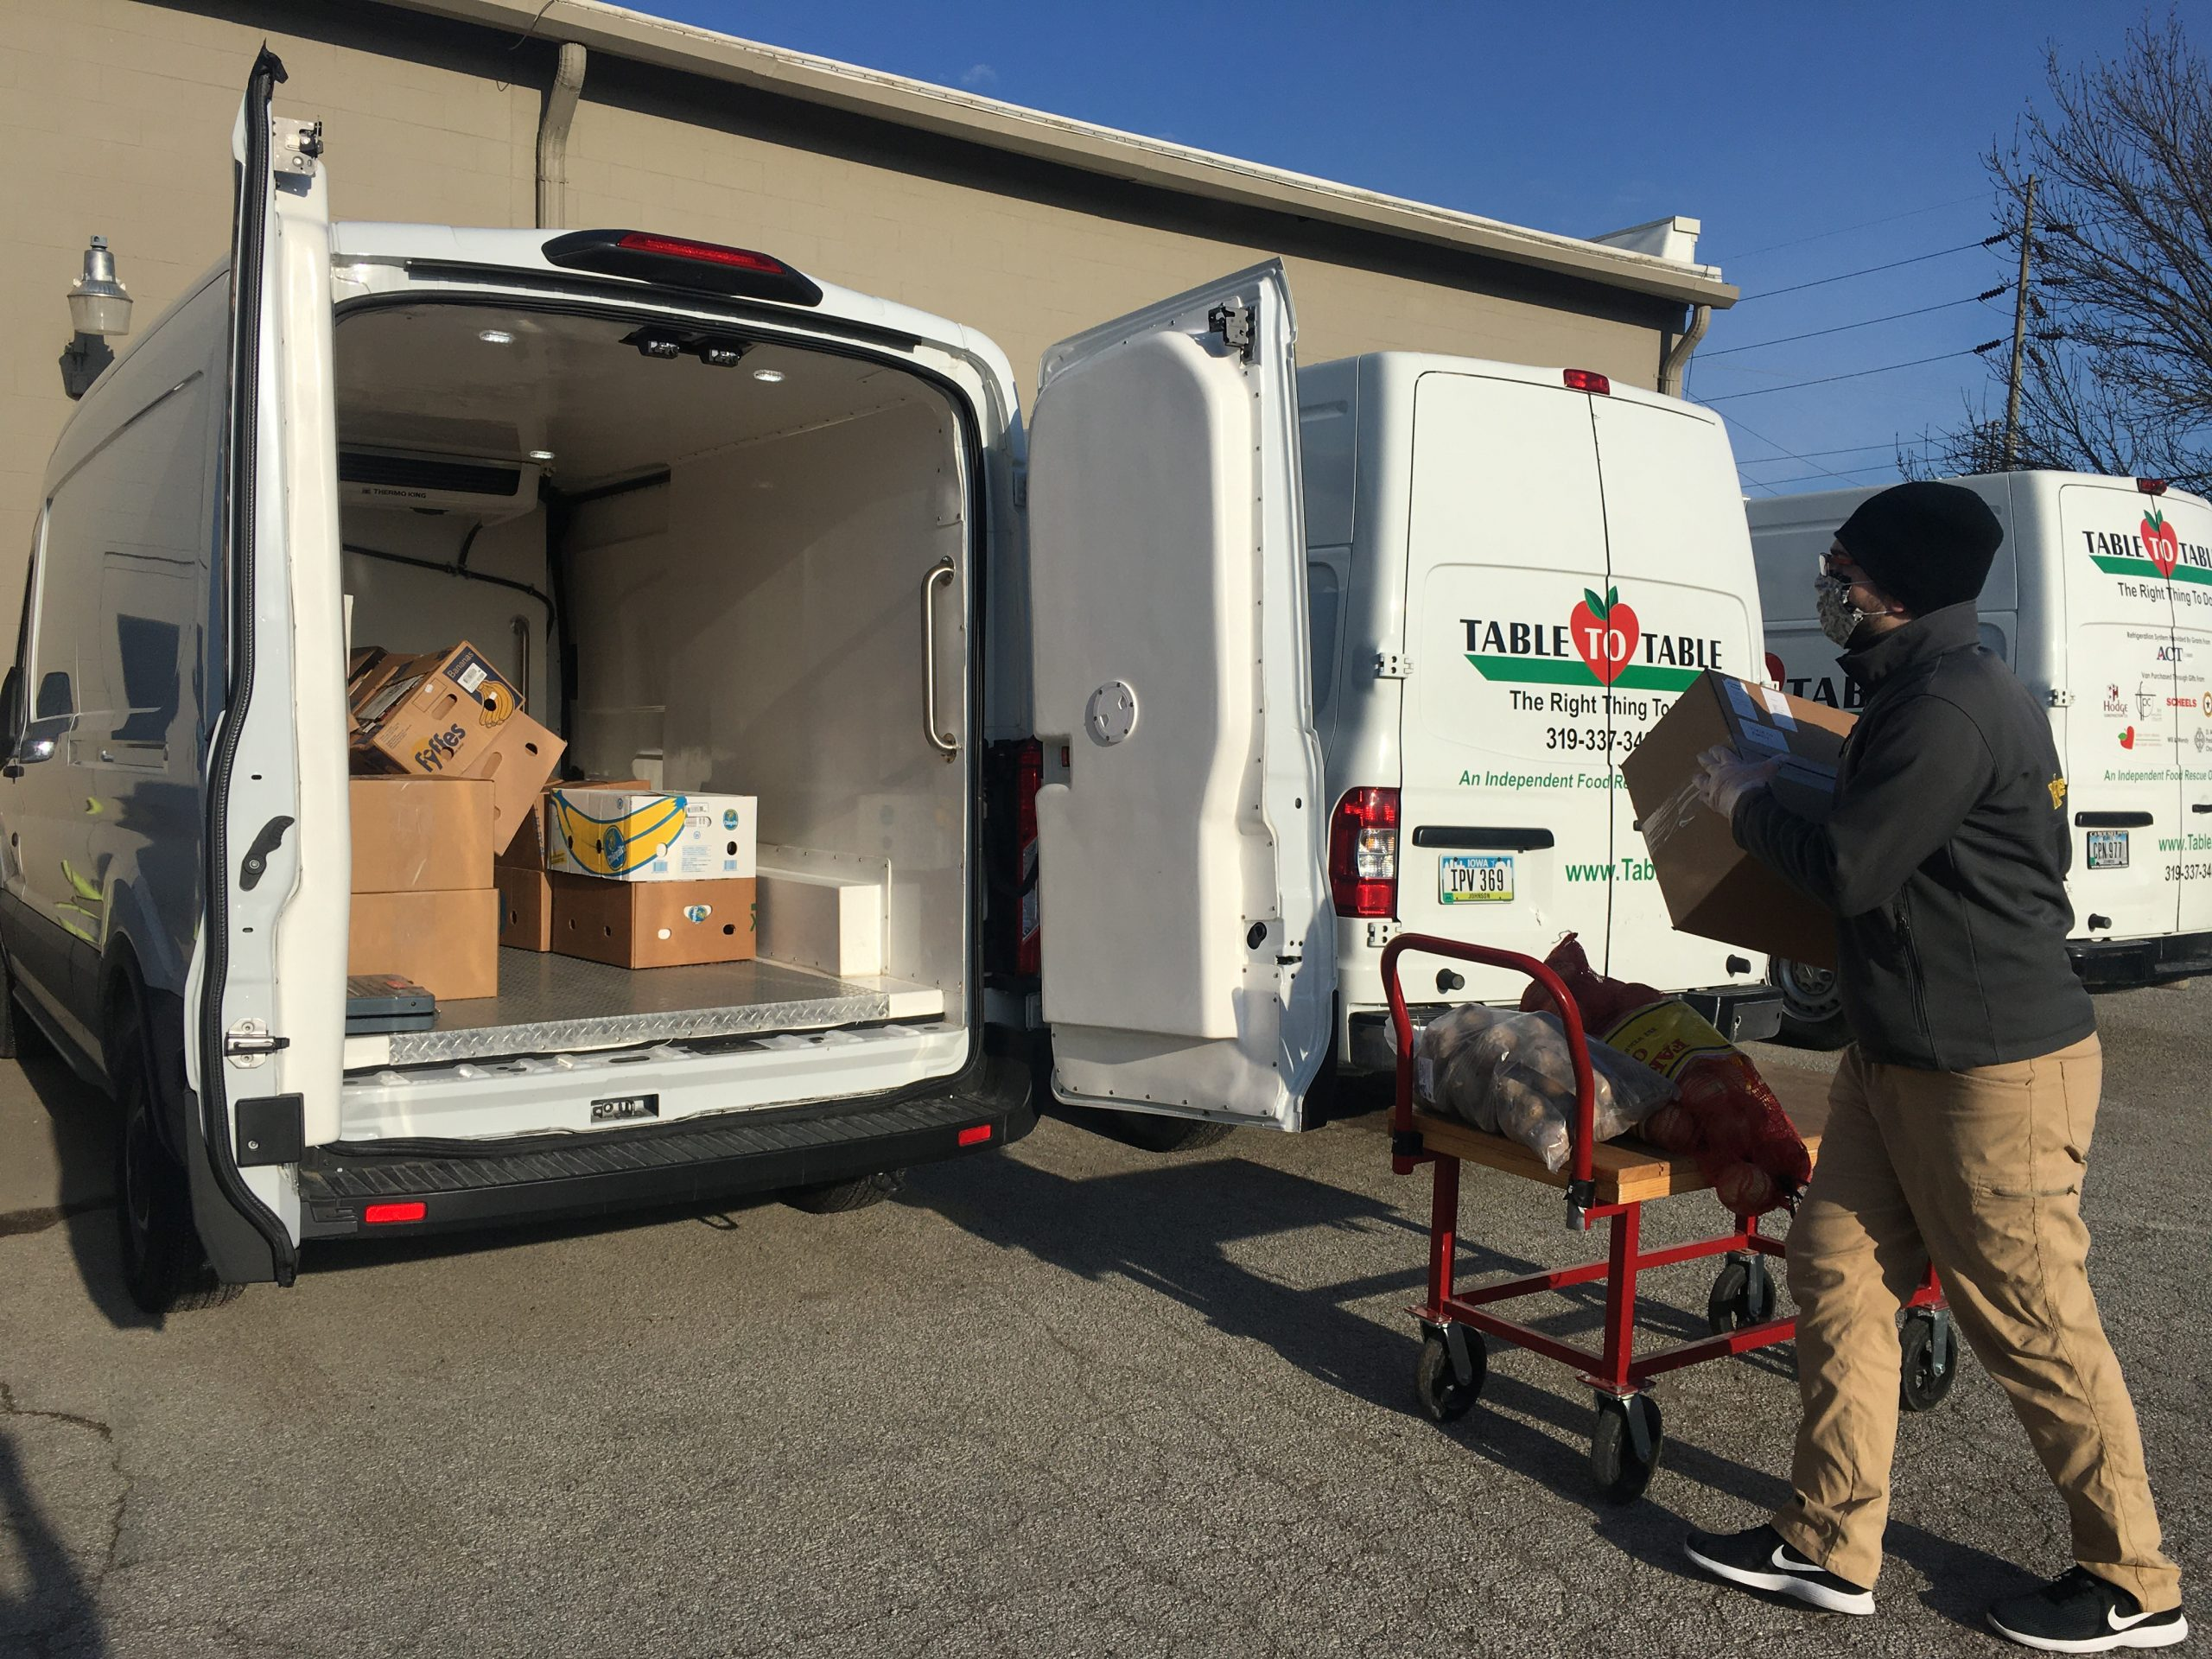 Loading van with produce